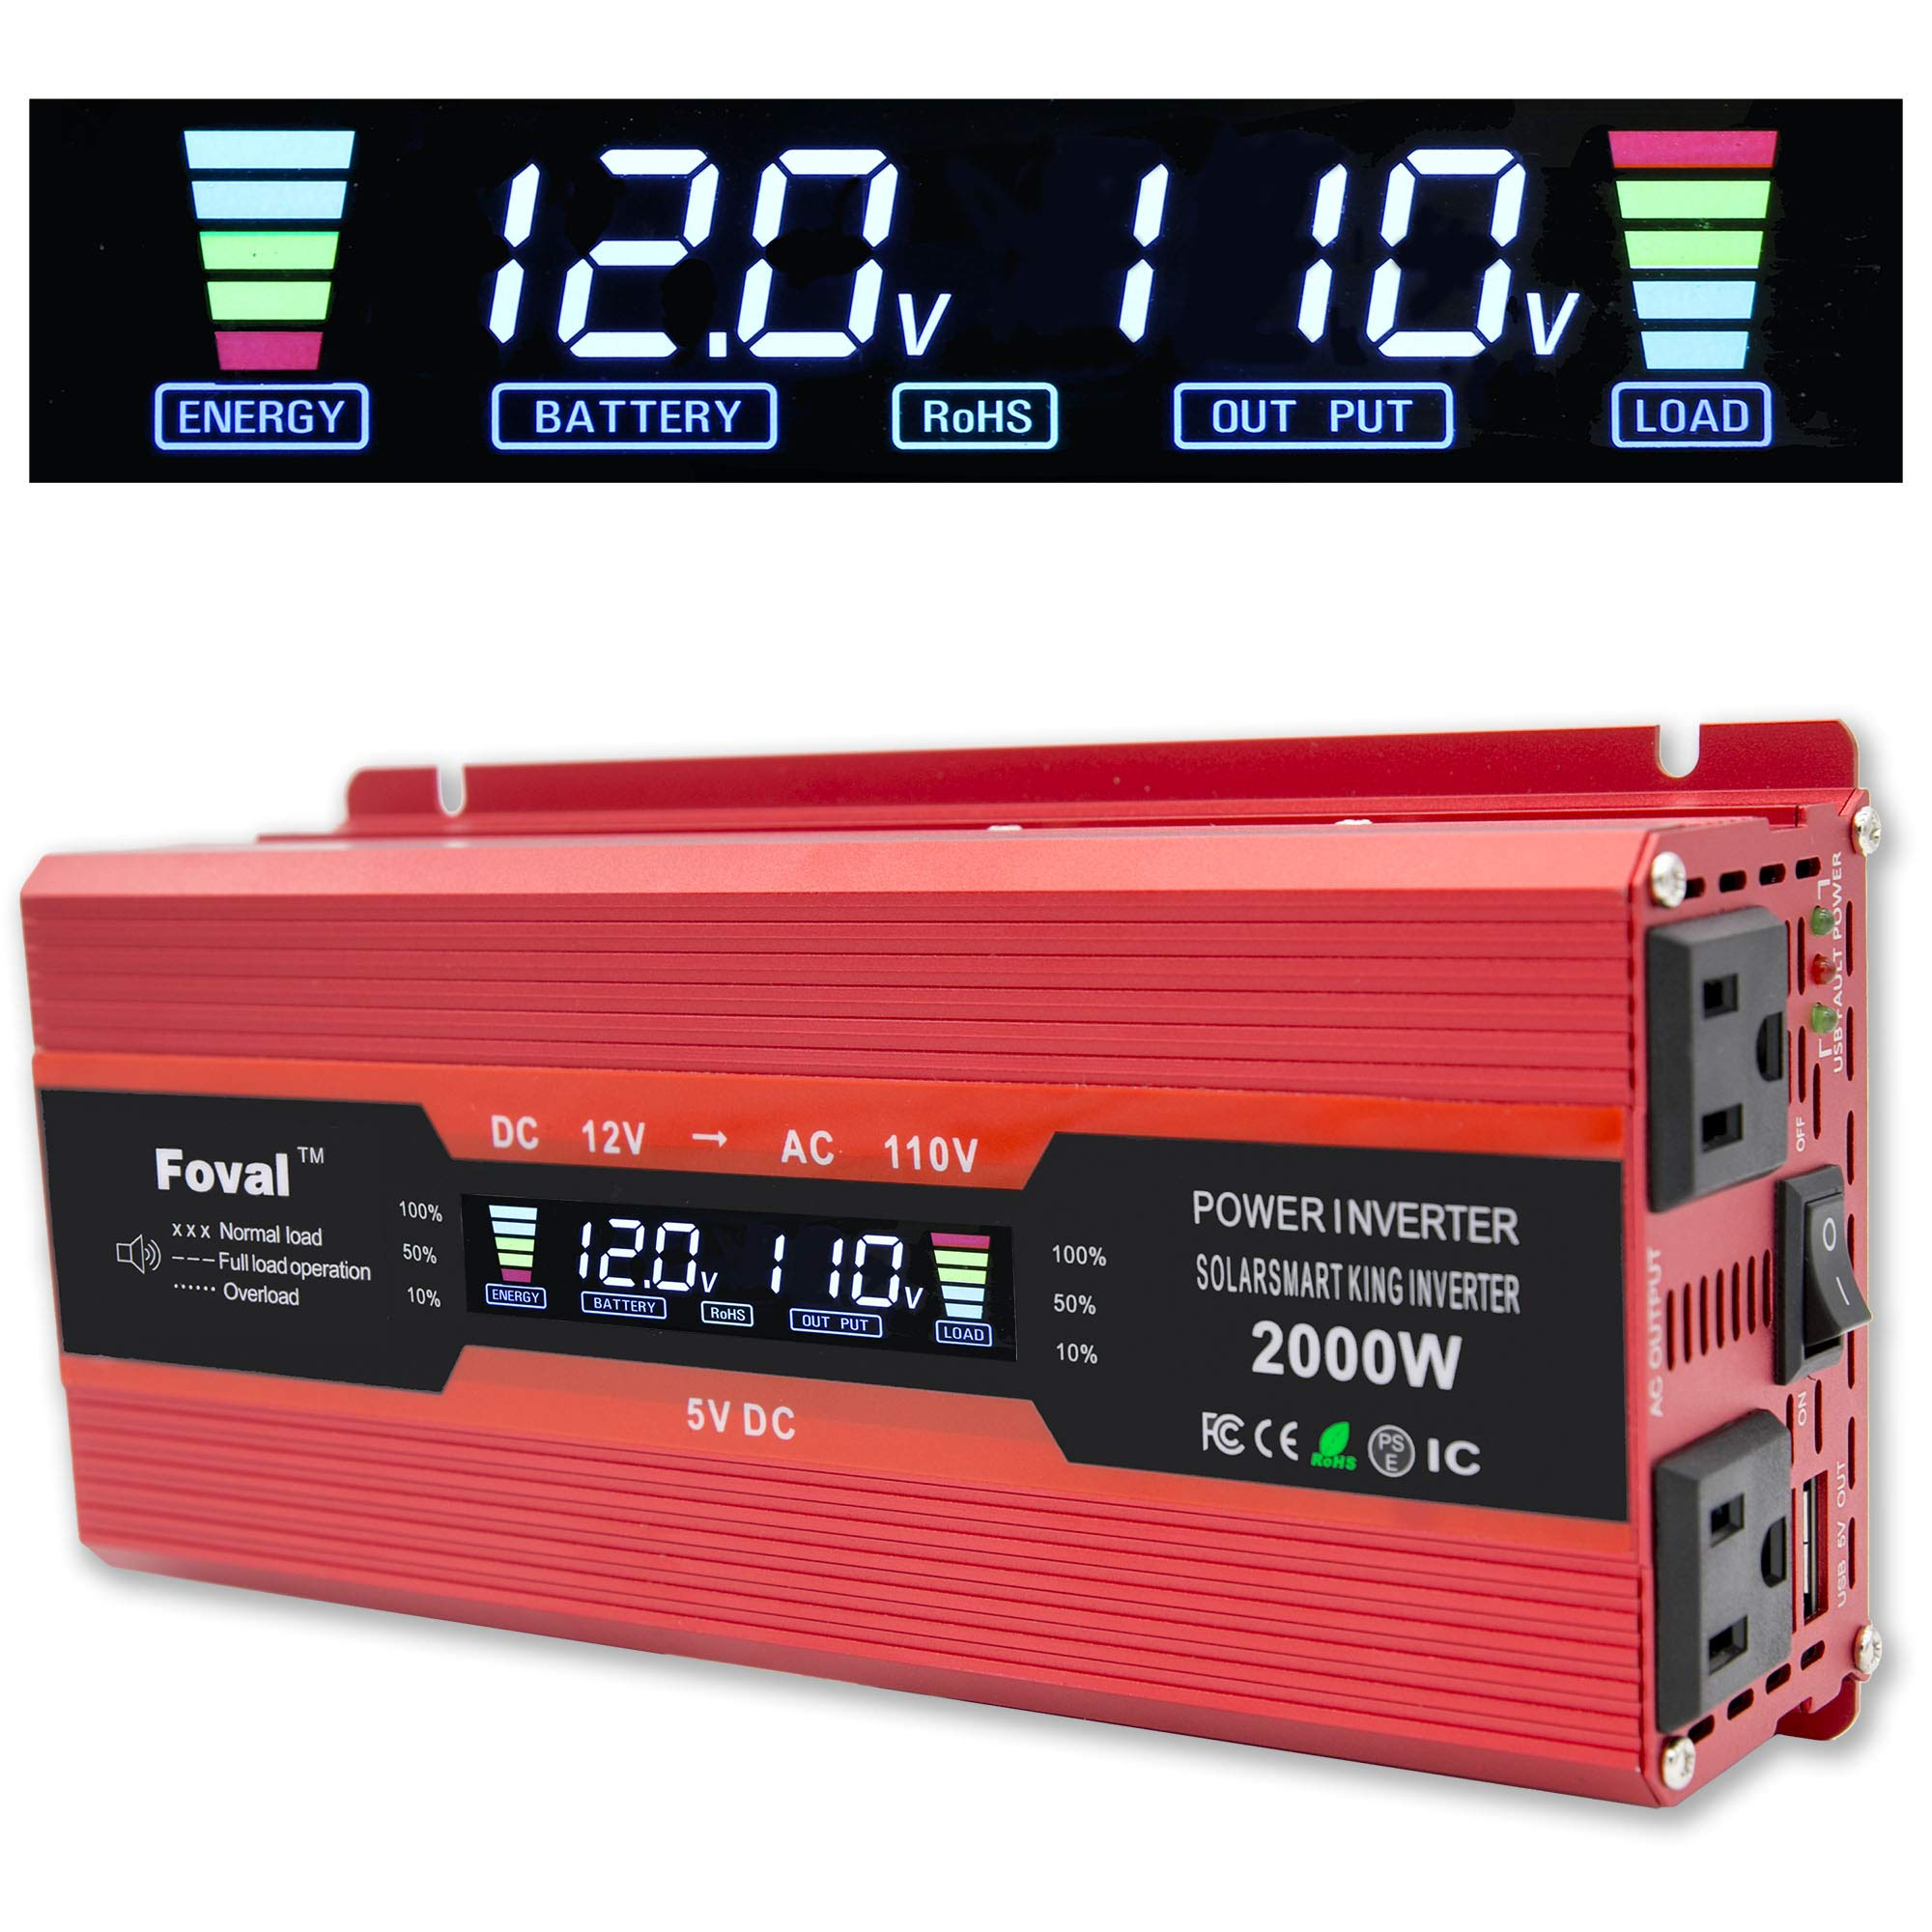 Cantonape 1000W/2000W(Peak) Car Power Inverter DC 12V to 110V AC Converter with LCD Display Dual AC Outlets and Dual USB Car Charger for Car Home Laptop Truck (Red) by Cantonape